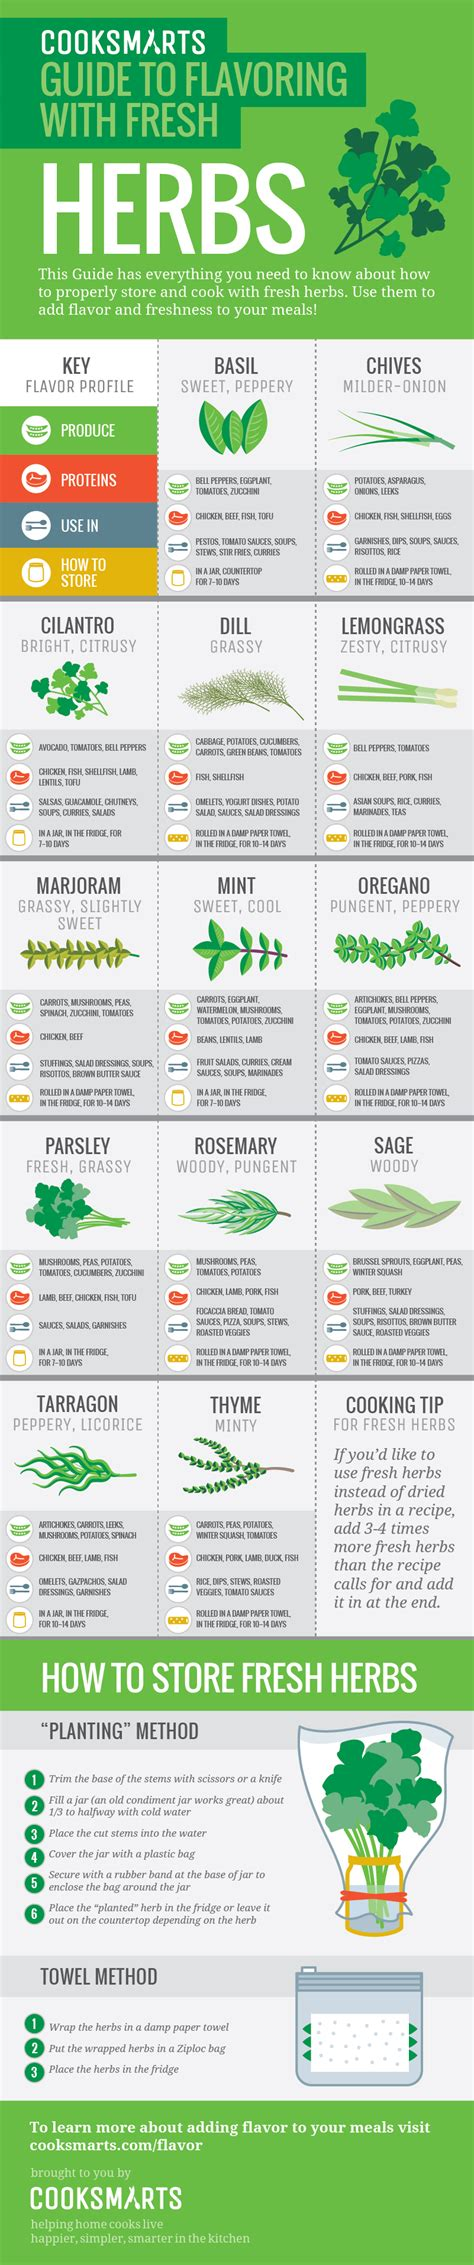 herbs chart guide to flavoring with fresh herbs cook smarts